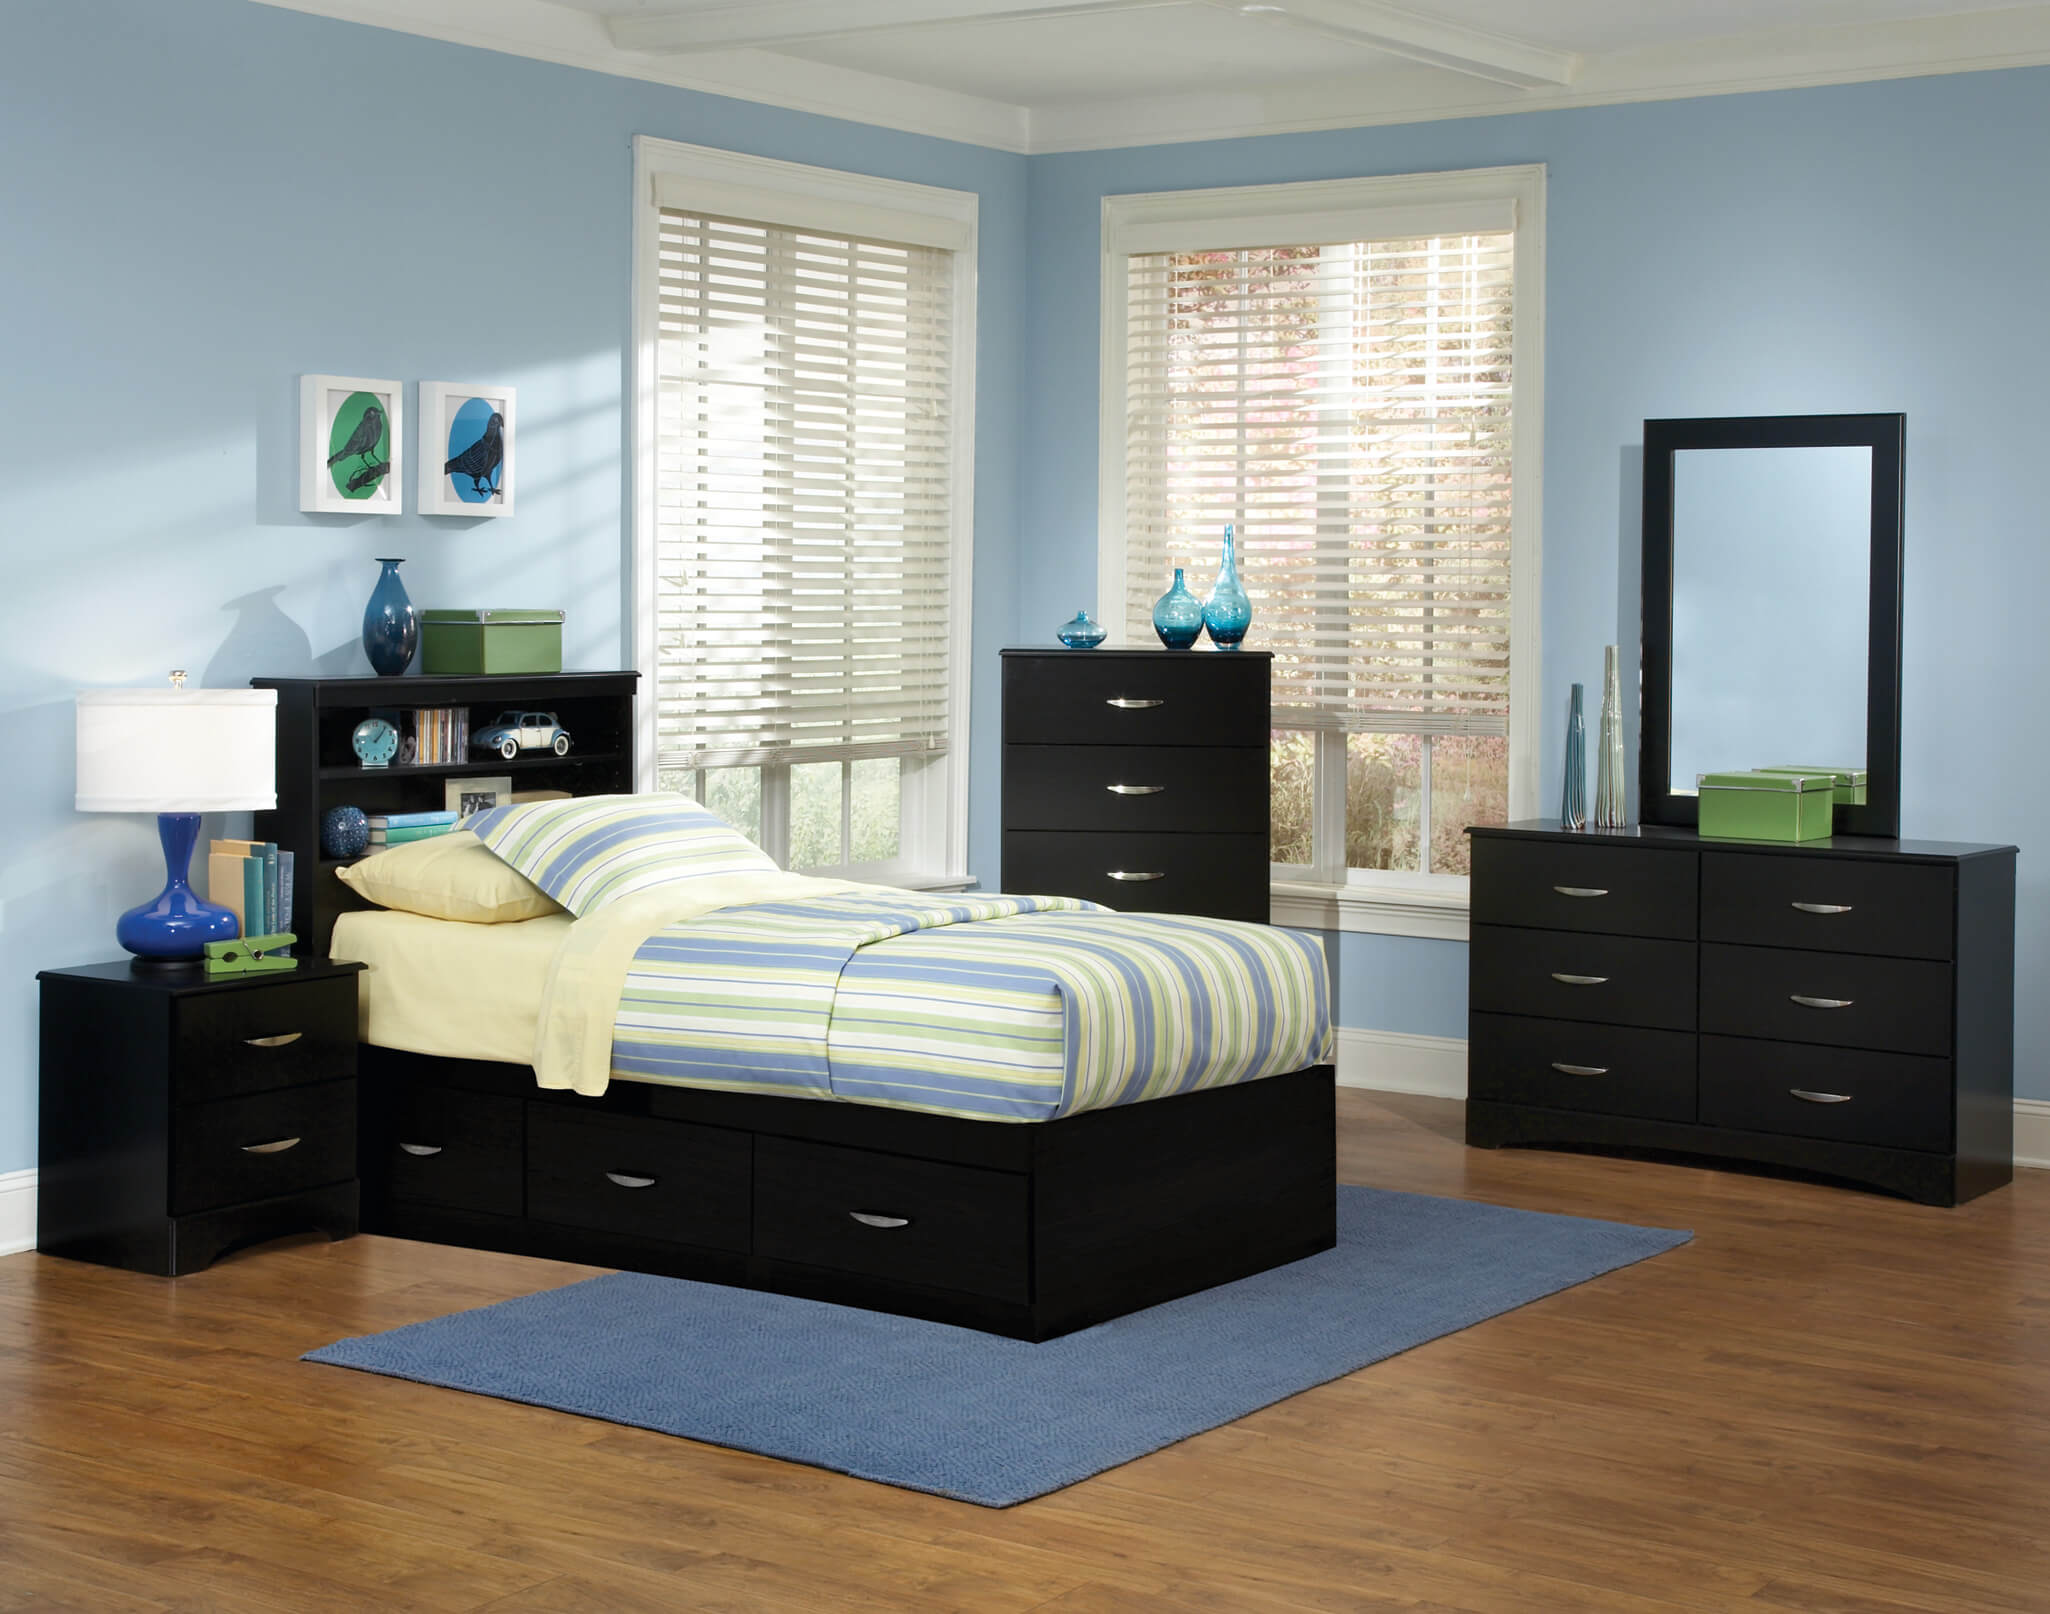 Fullsize Of Twin Bedroom Sets